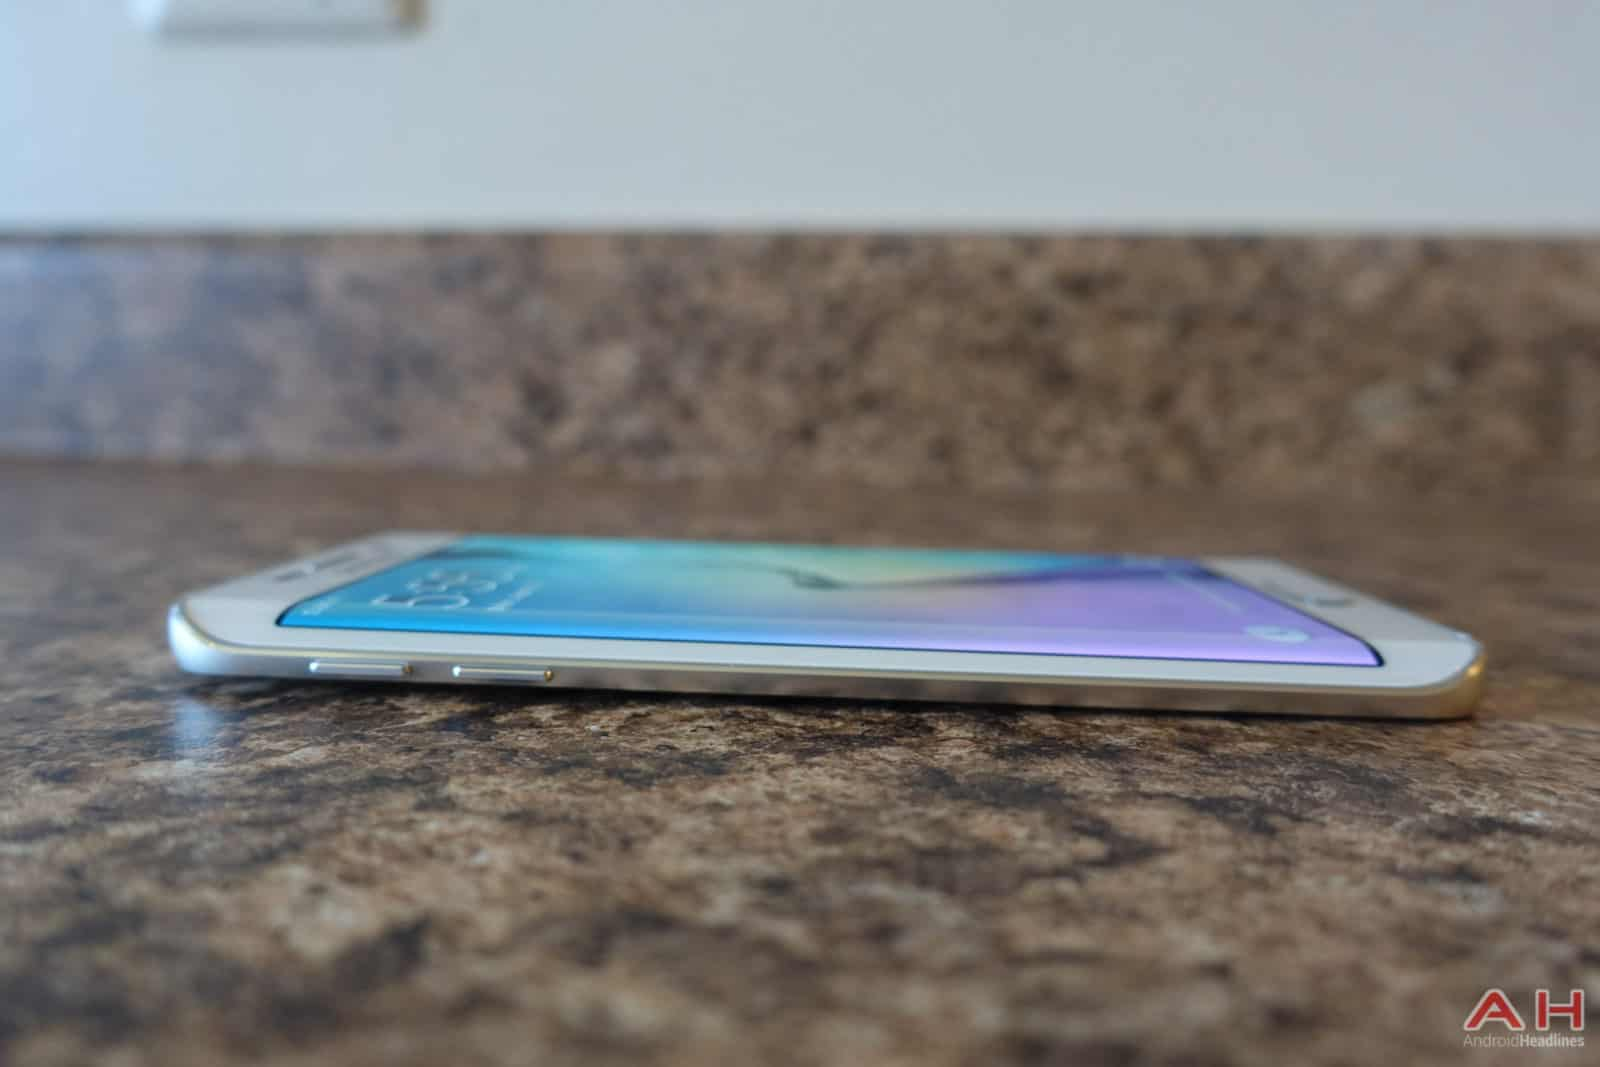 Samsung-Galaxy-S6-Edge-AH-18